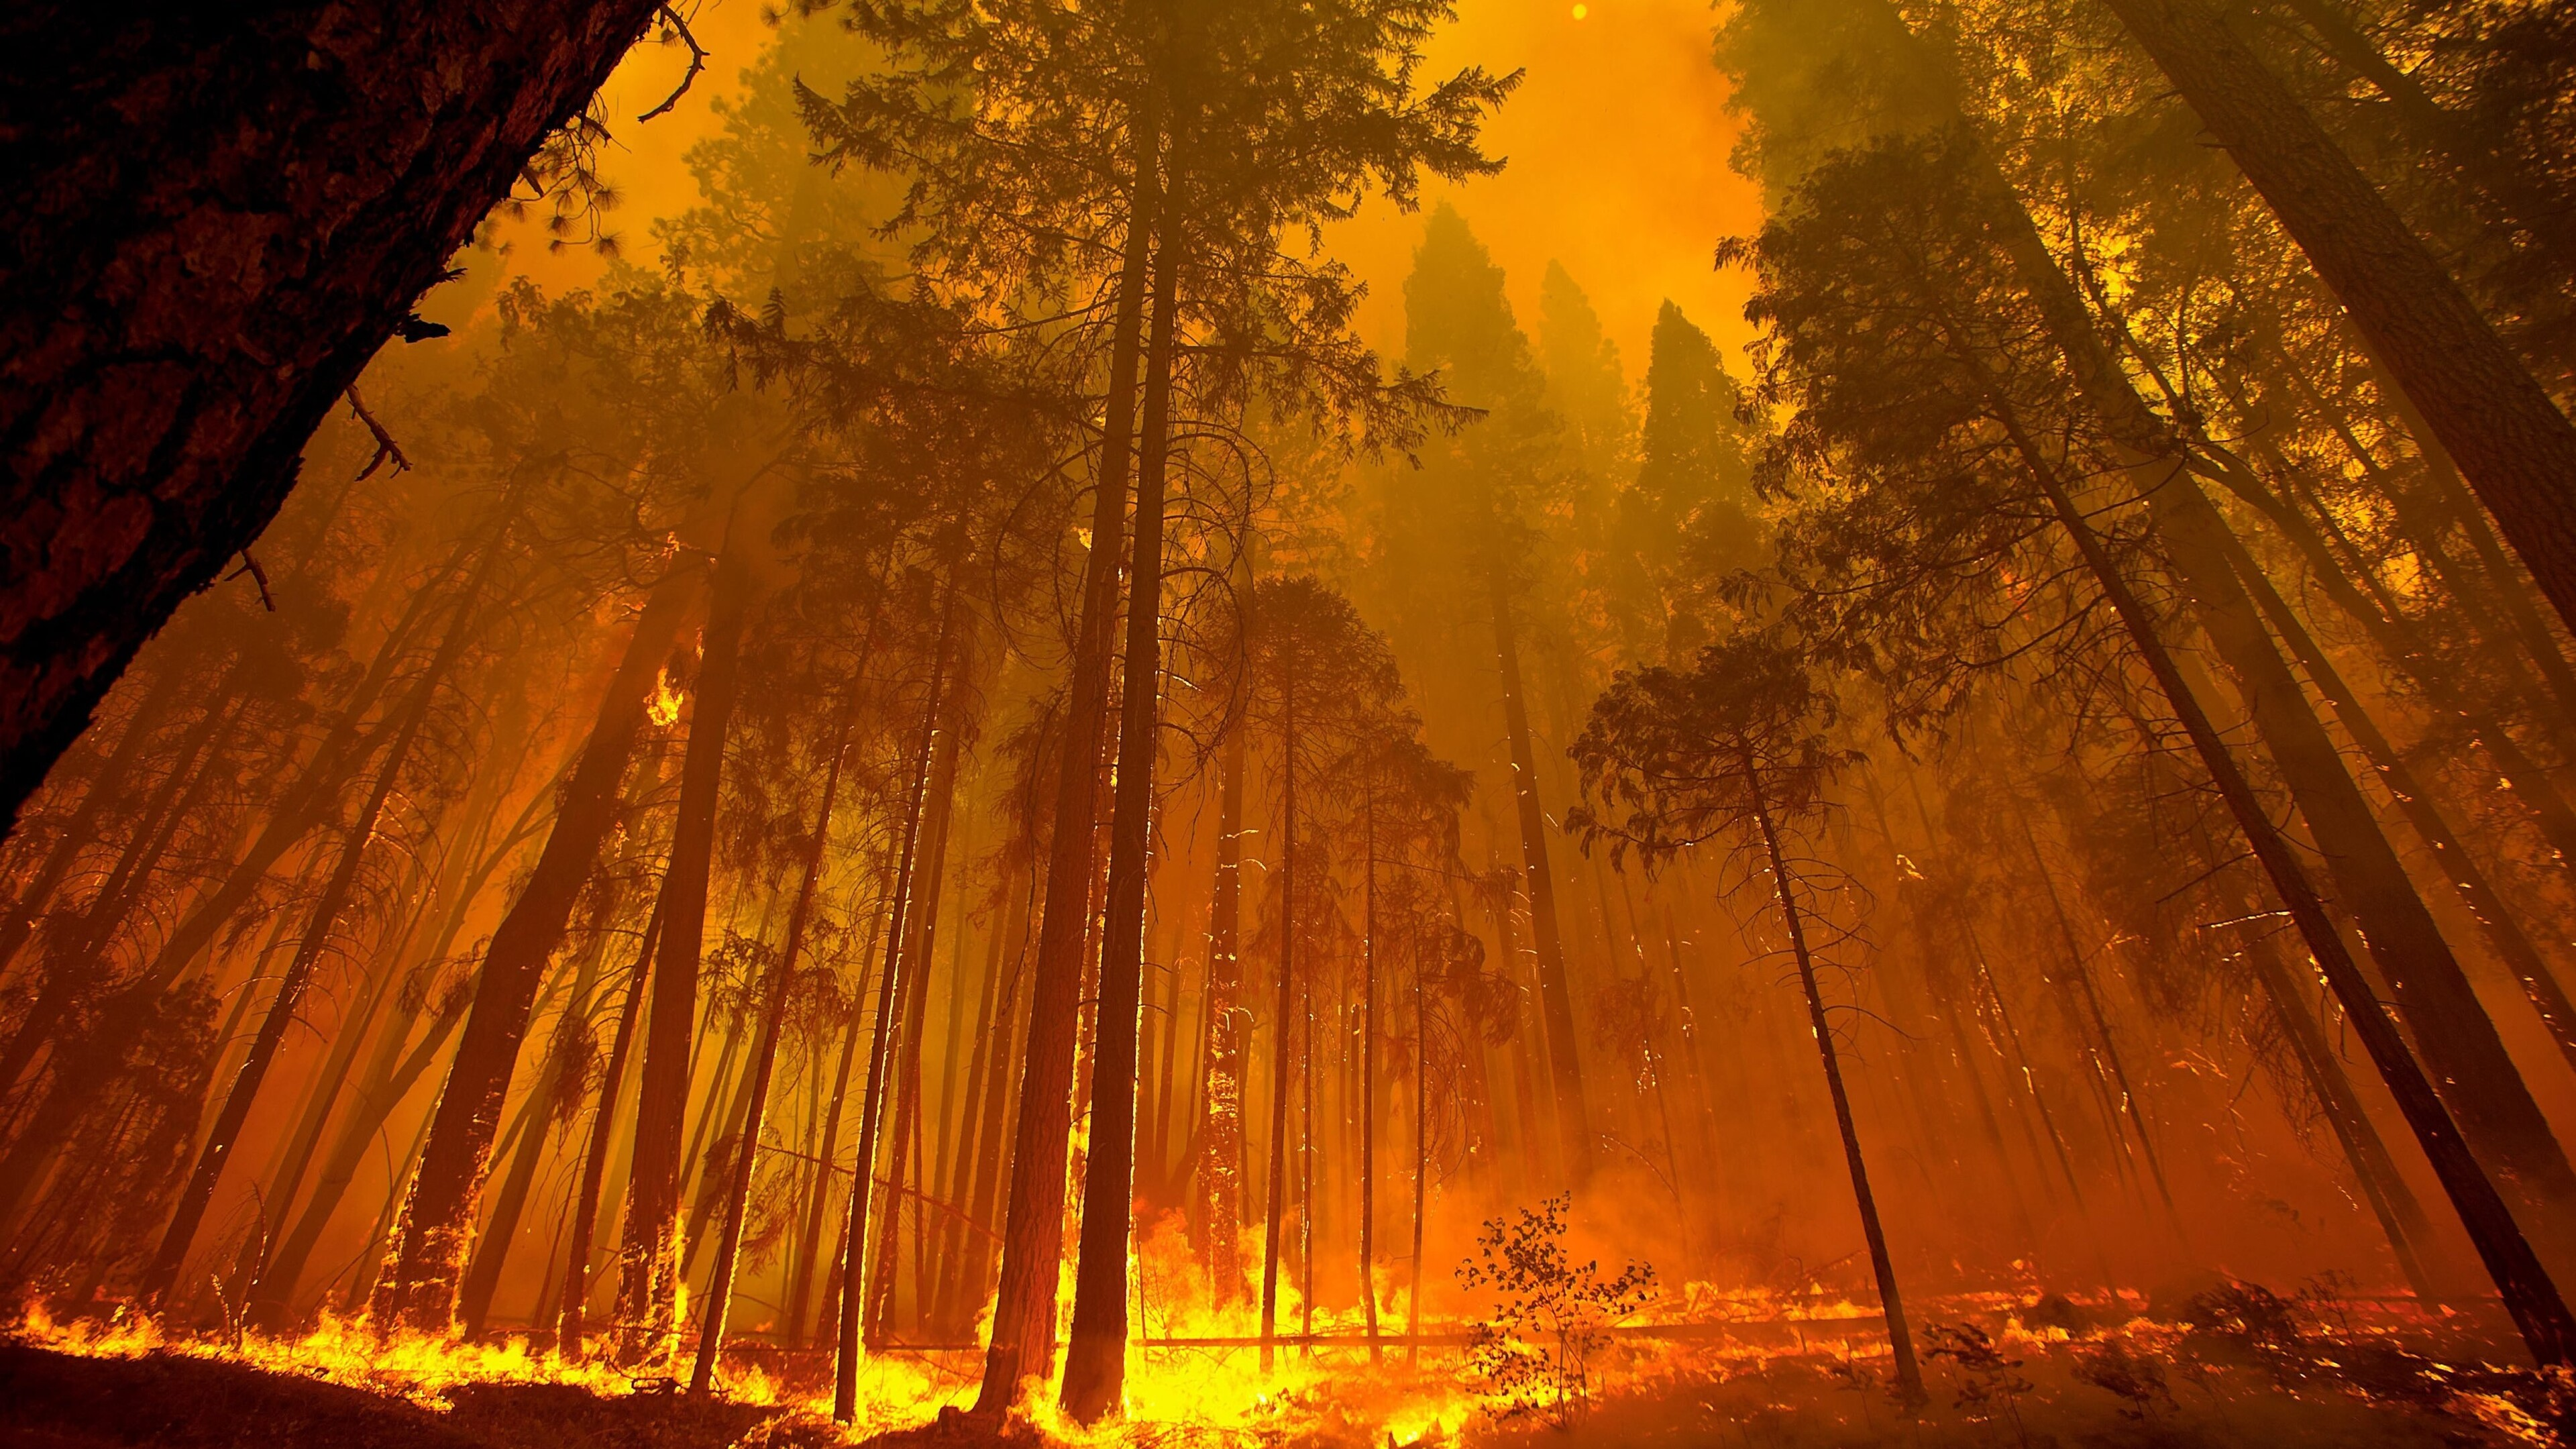 3840x2160 Forest Fire 4k 4k HD 4k Wallpapers, Images ...